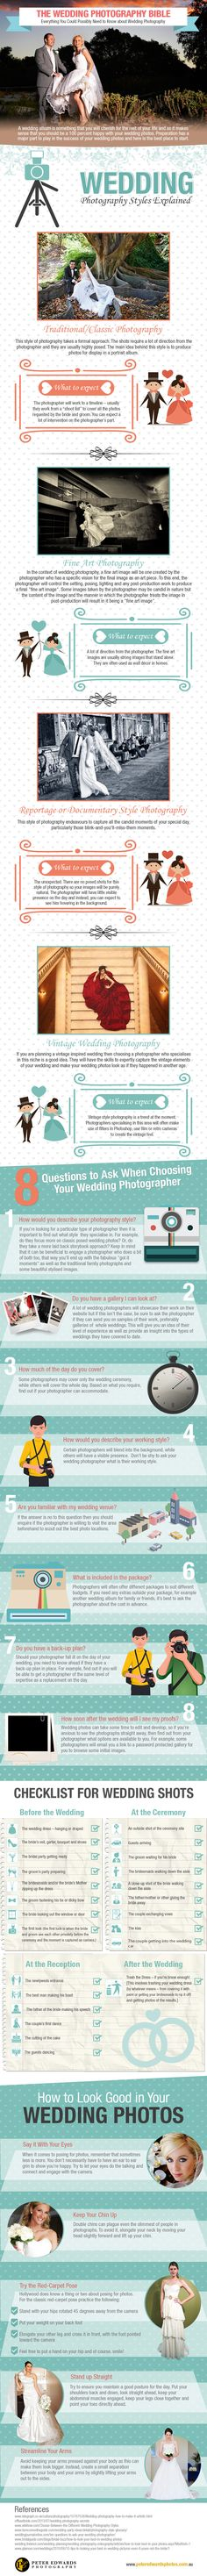 The Wedding Photography Tips Bible. Wedding photography can be a tricky subject, but this helps a lot and is something I will keep in mind